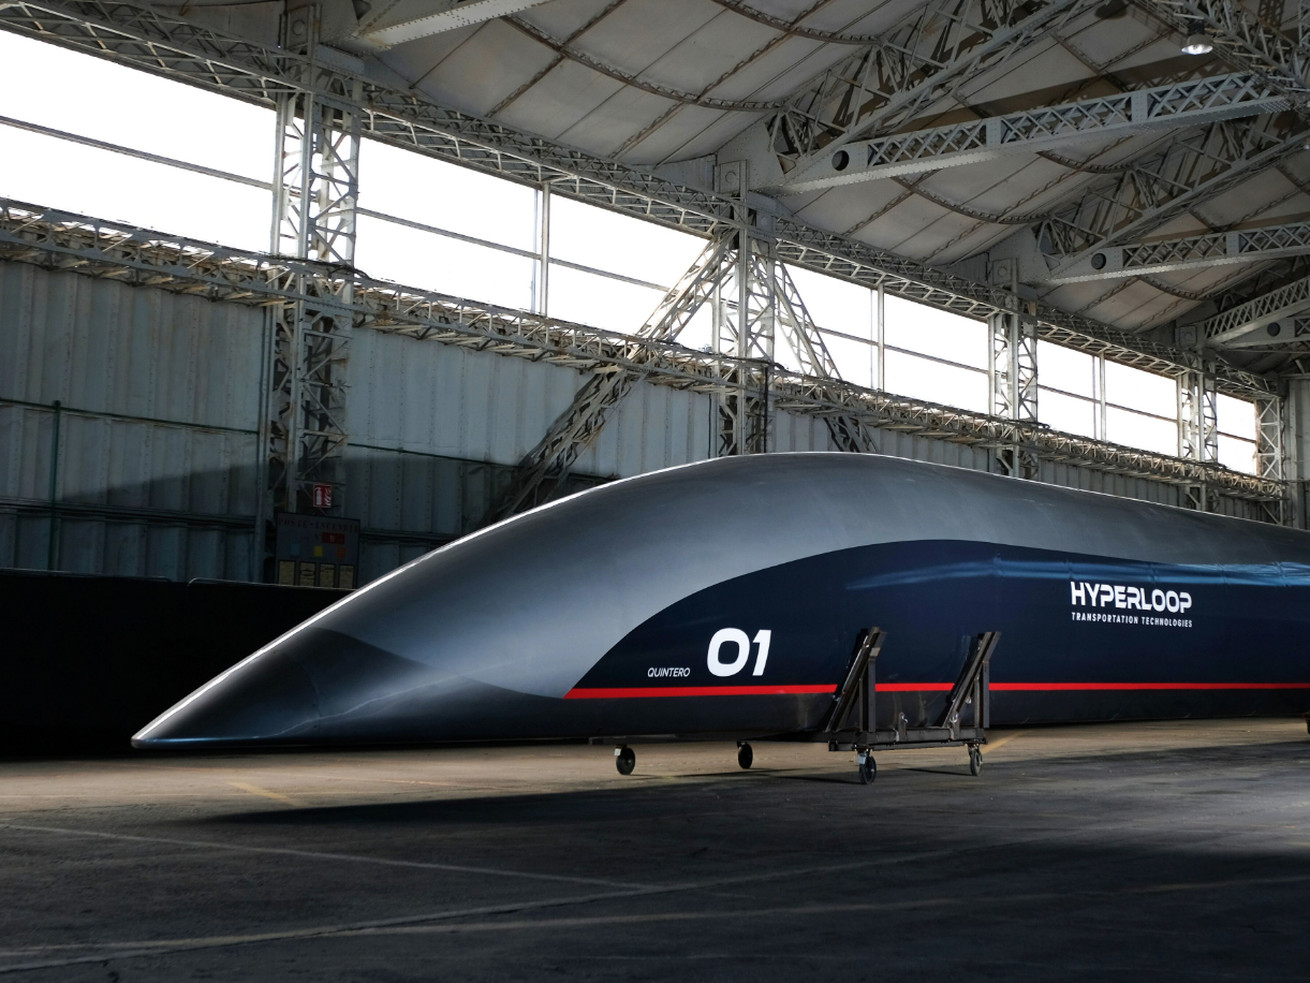 With hyperloop technology, the 310-mile trip between Chicago and Cleveland could take just 28 minutes.